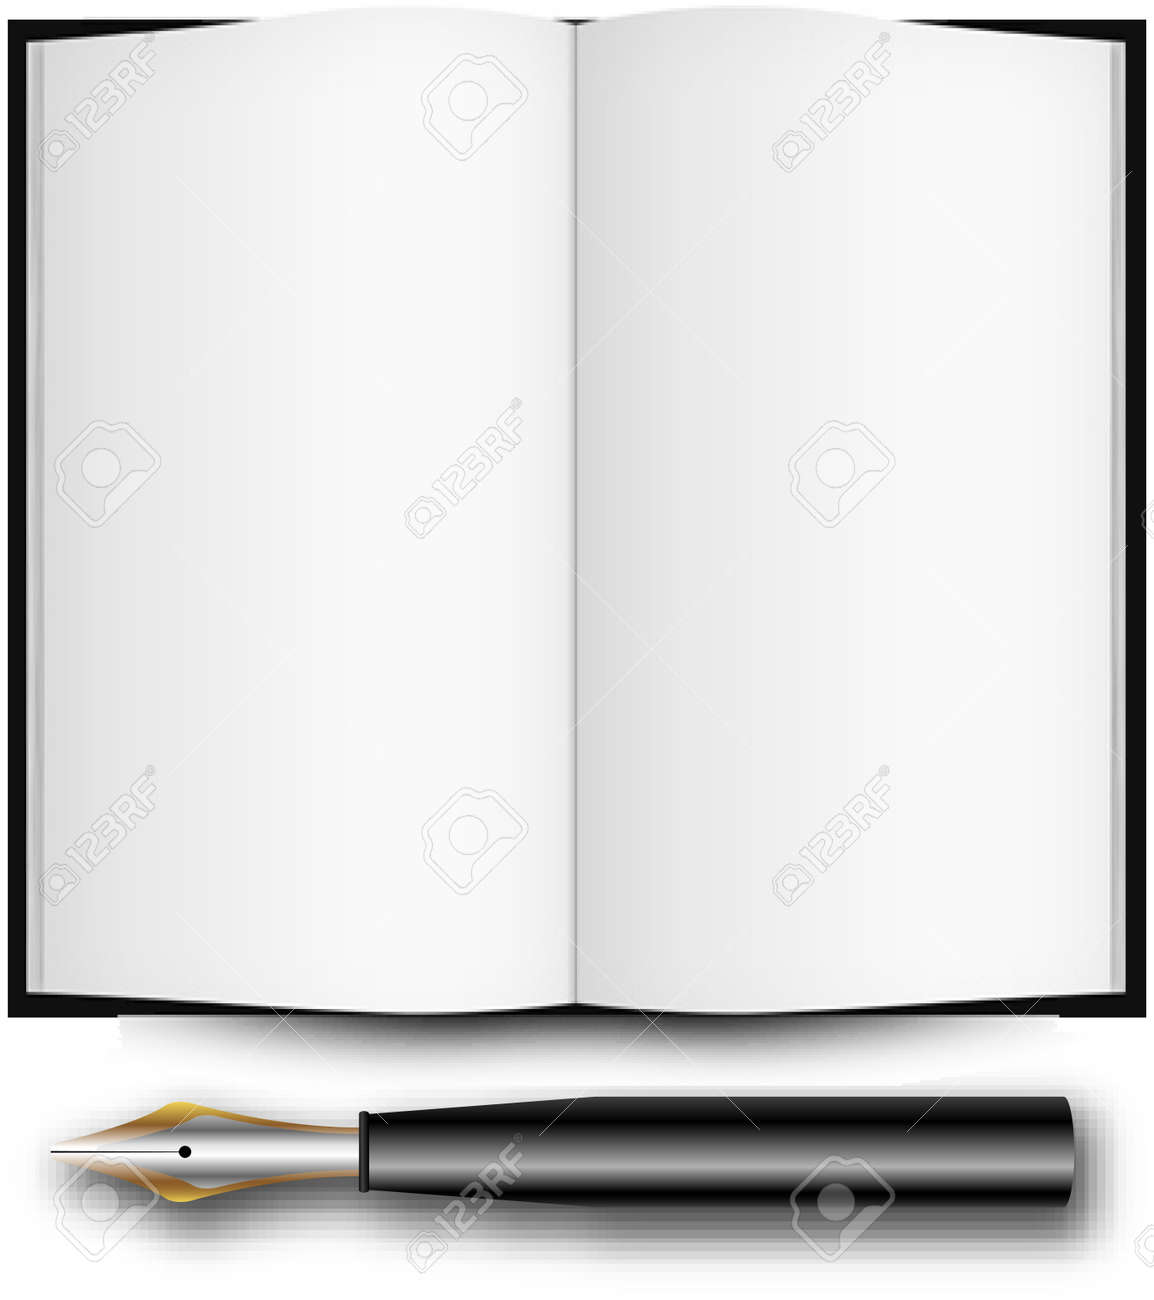 fountain ink pen and open book over white background, abstract art illustration Stock Photo - 7323747